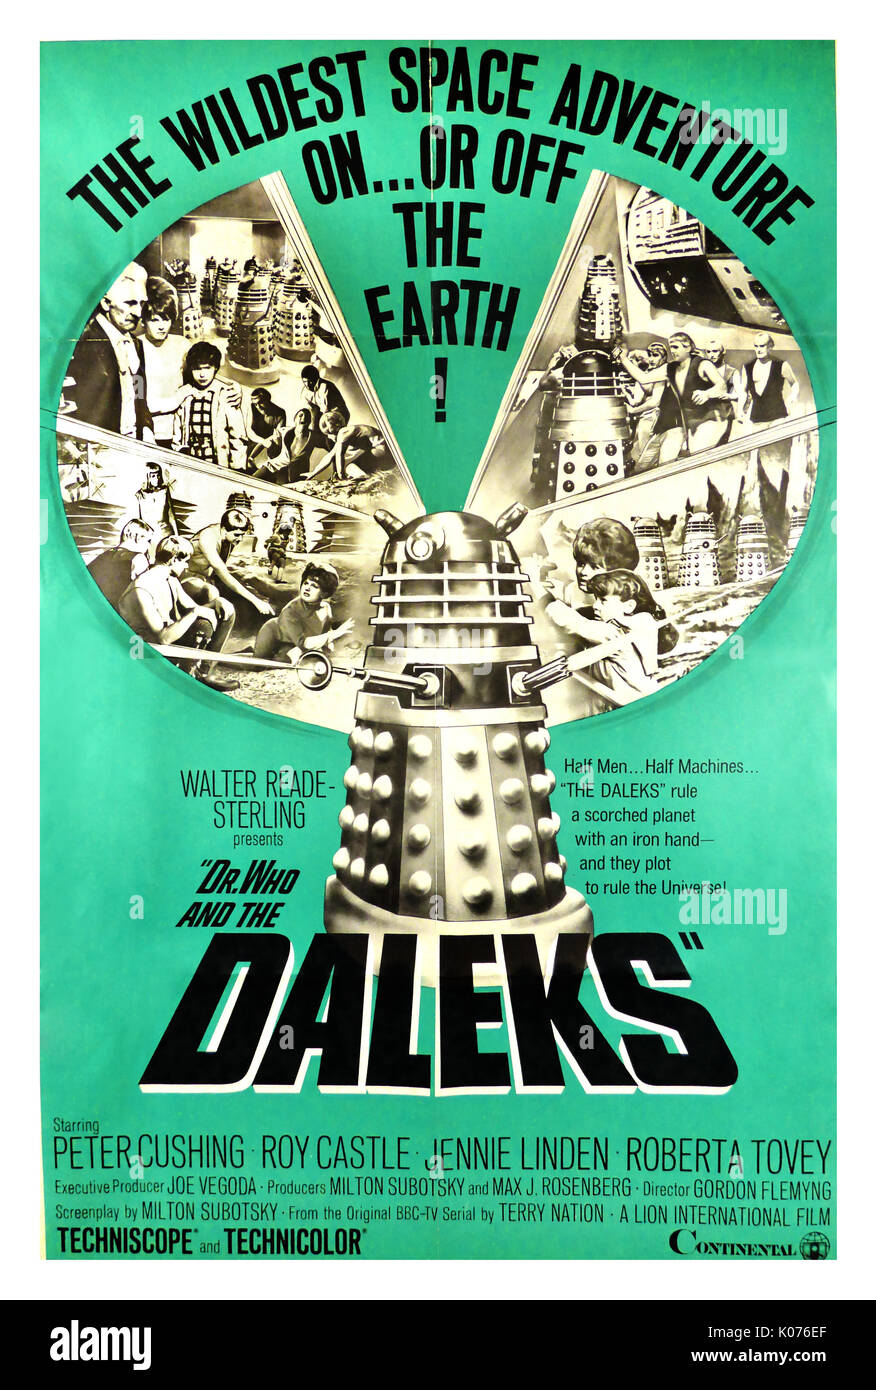 "DR. L'OMS ET DE LA DALEKS, 1965. Vintage Original Movie Poster avec Peter Cushing, Roy Castle et Jennie Linden. Réalisé par Gordon Fleming ce film a petit budget de la BBC, science-fiction séries TV à grand écran. ""L'aventure spatiale les plus fous sur …ou au large de la terre ! La moitié des hommes…la moitié de la machine une règle scorched planet avec une main de fer et tracer à la règle de l'univers"". Photo Stock"